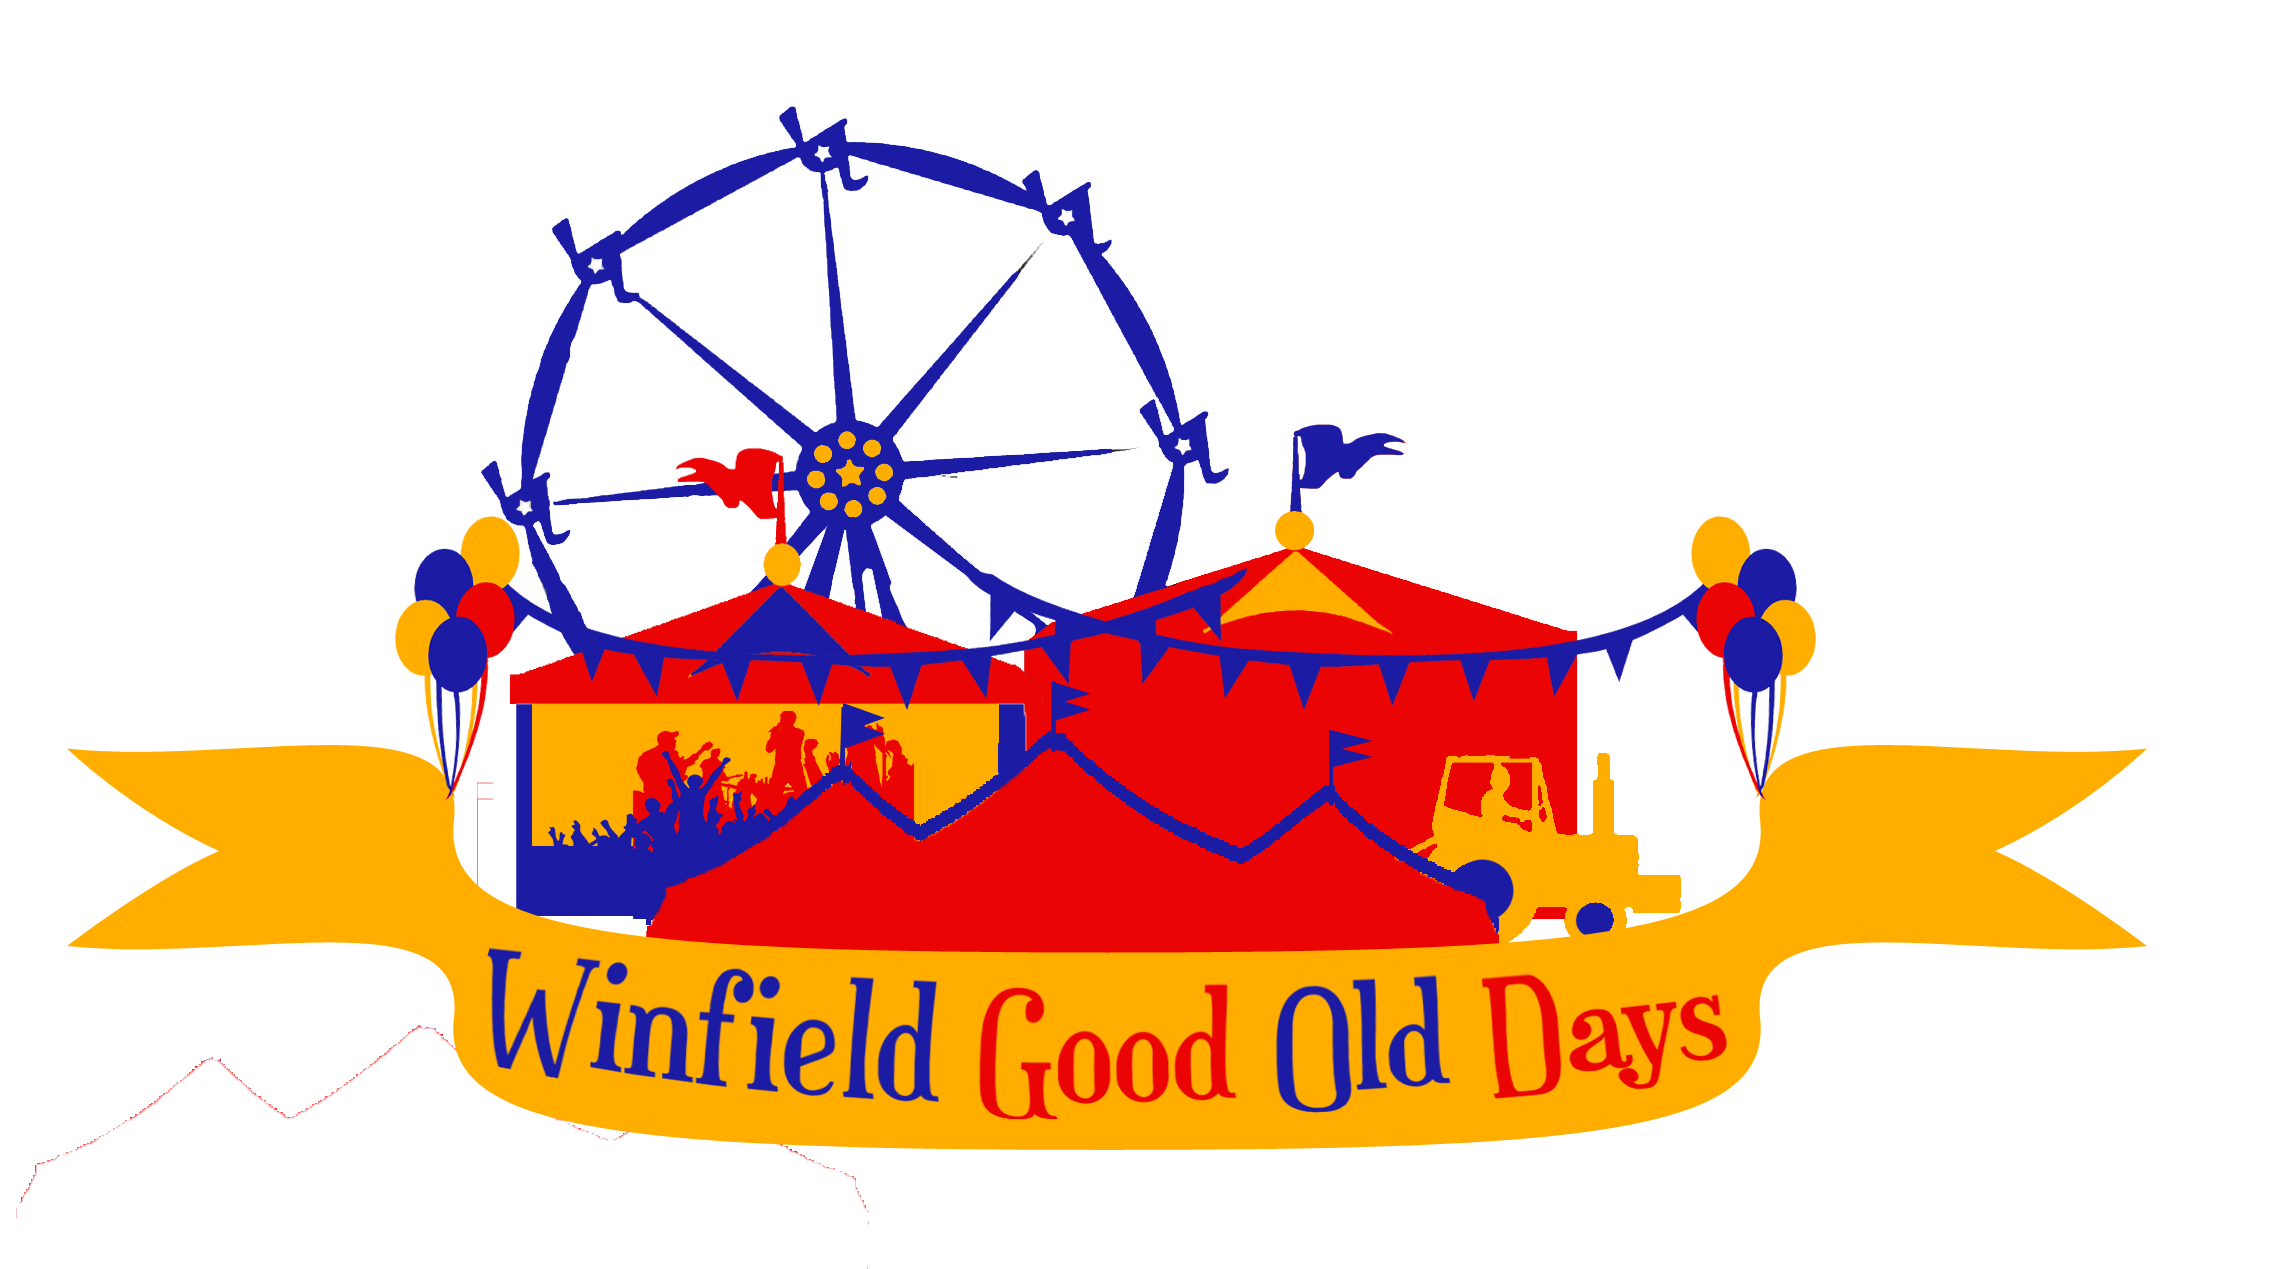 Click here for http://winfieldgoodolddays.com